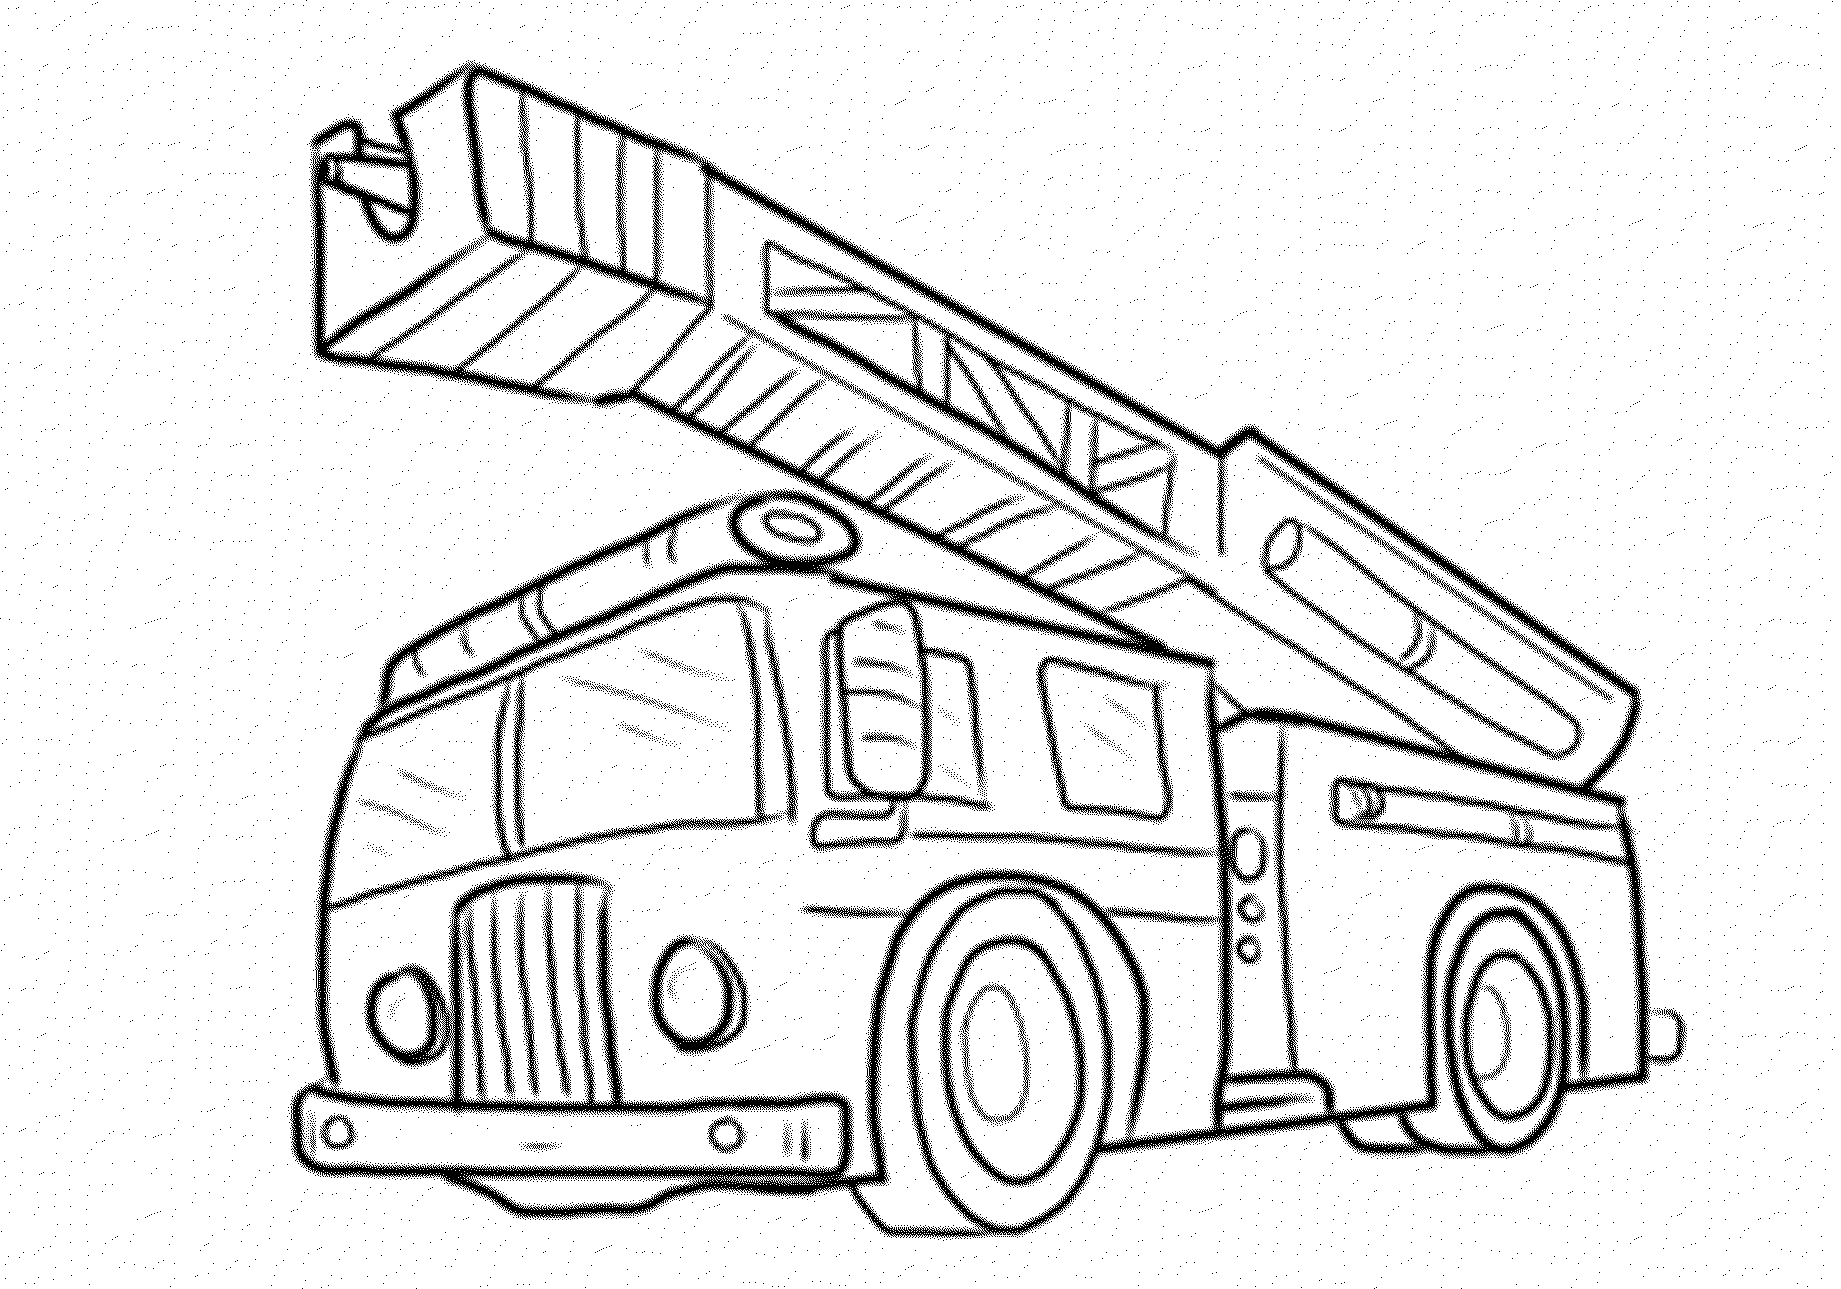 fire truck coloring pictures fire truck coloring pages coloringrocks truck fire pictures coloring